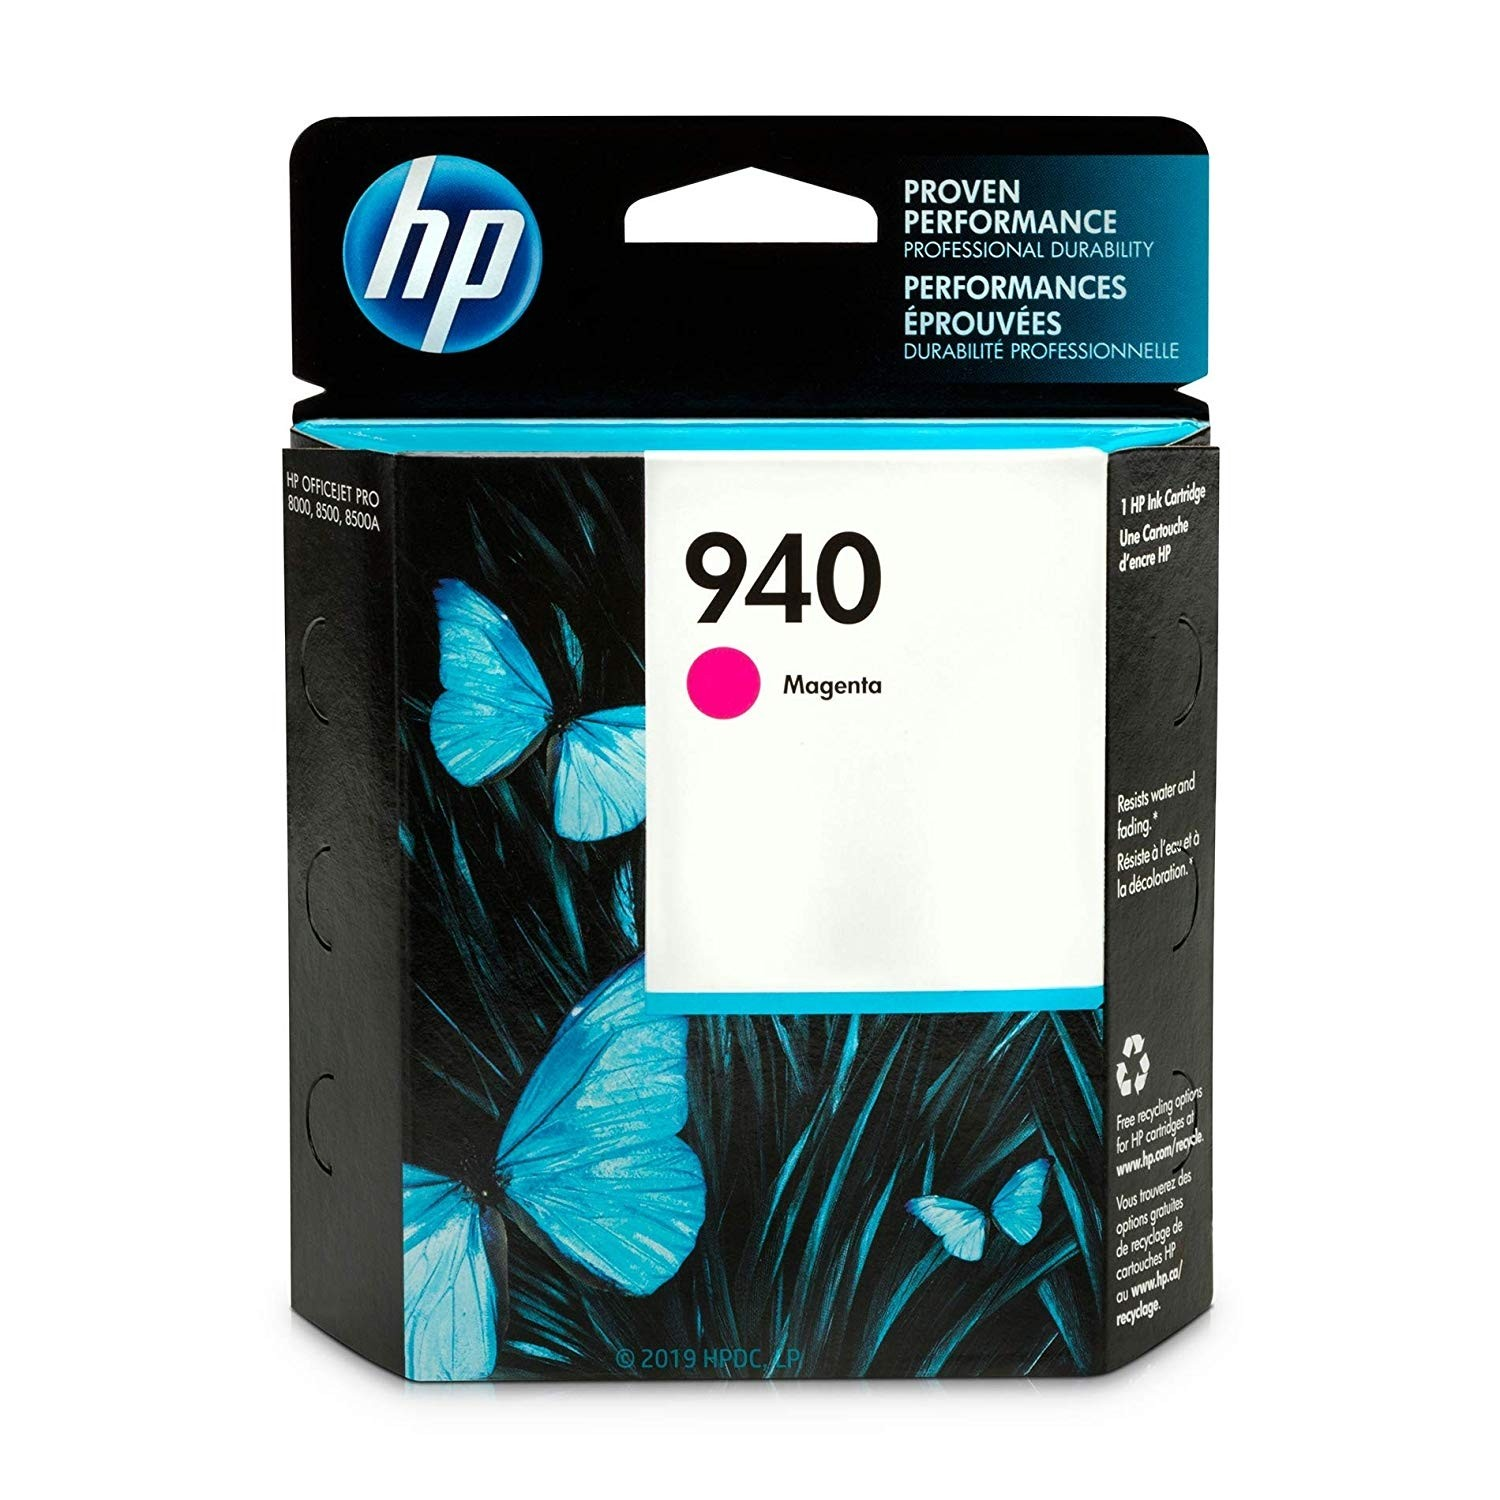 HP 940 Ink Cartridge, Magenta - 1-pack